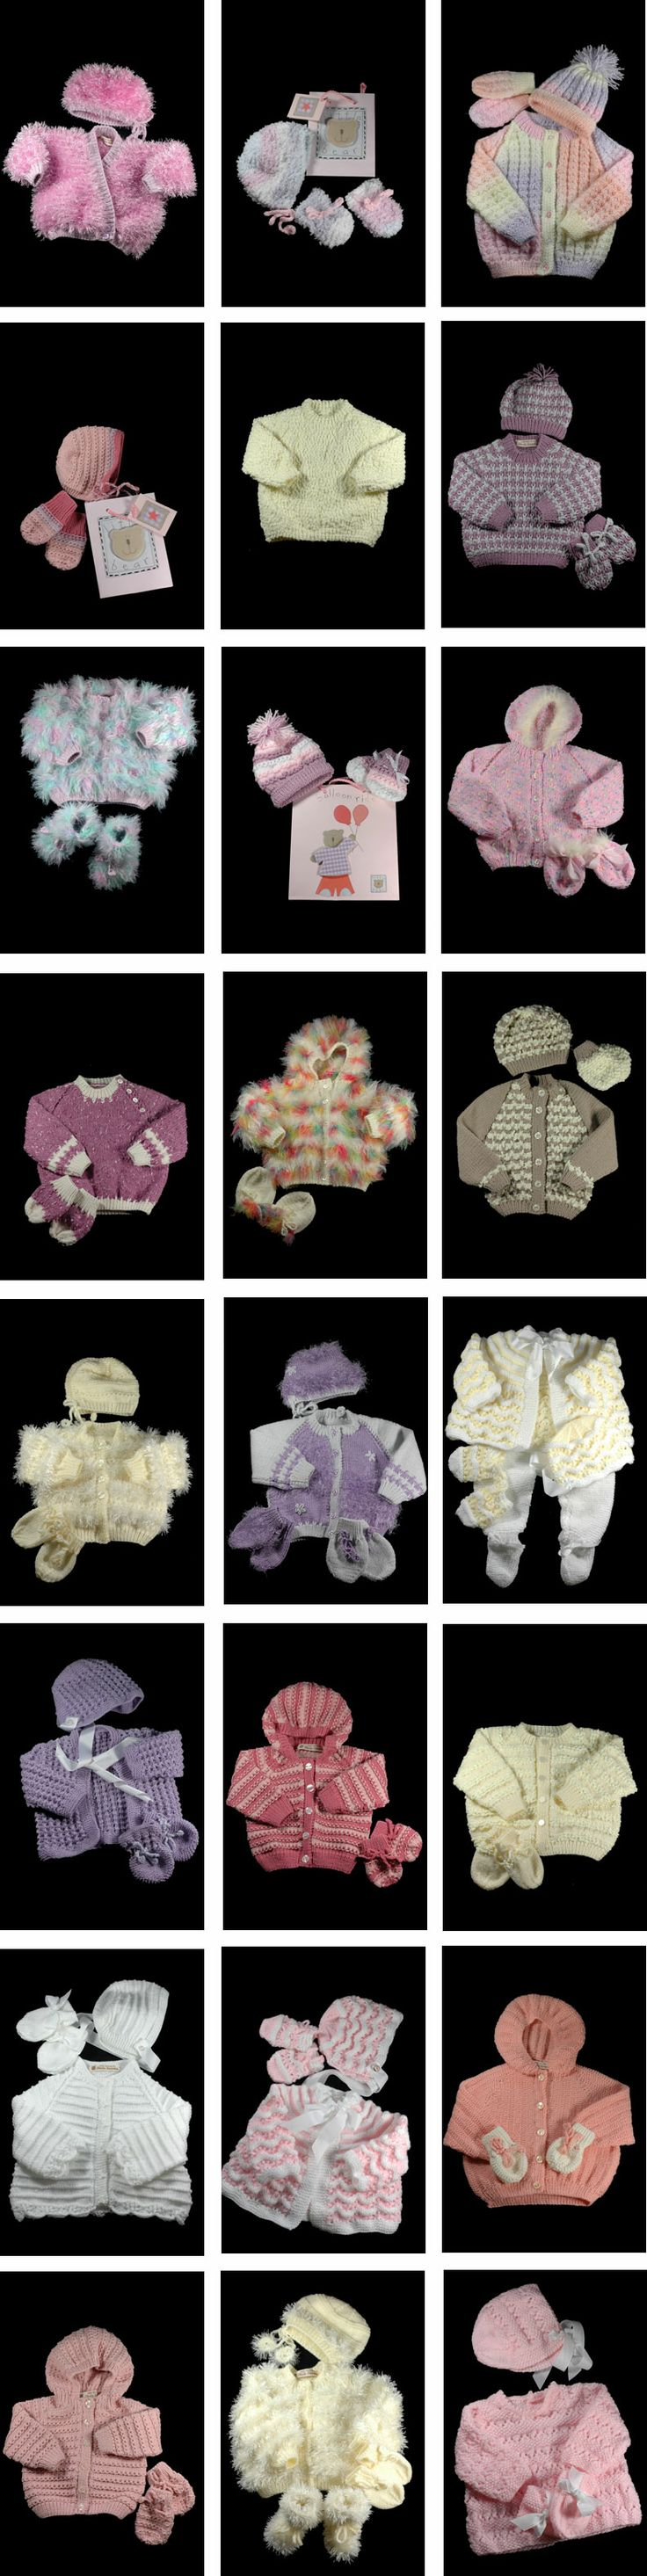 SHEILA'S HAND-KNITTED BABY CLOTHES - girls